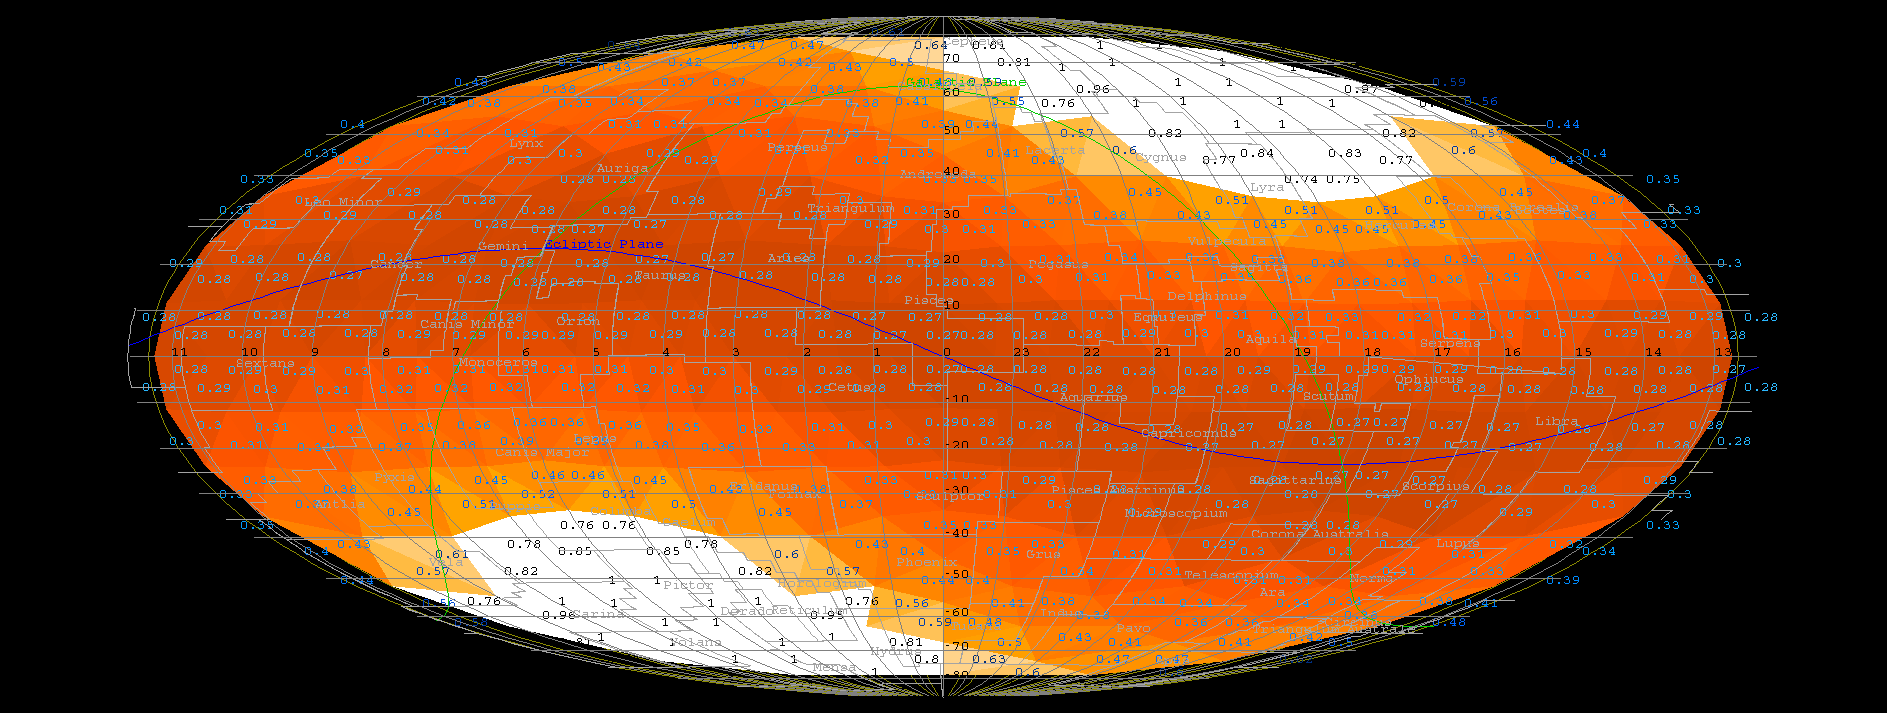 Overall sky visibility by Herschel